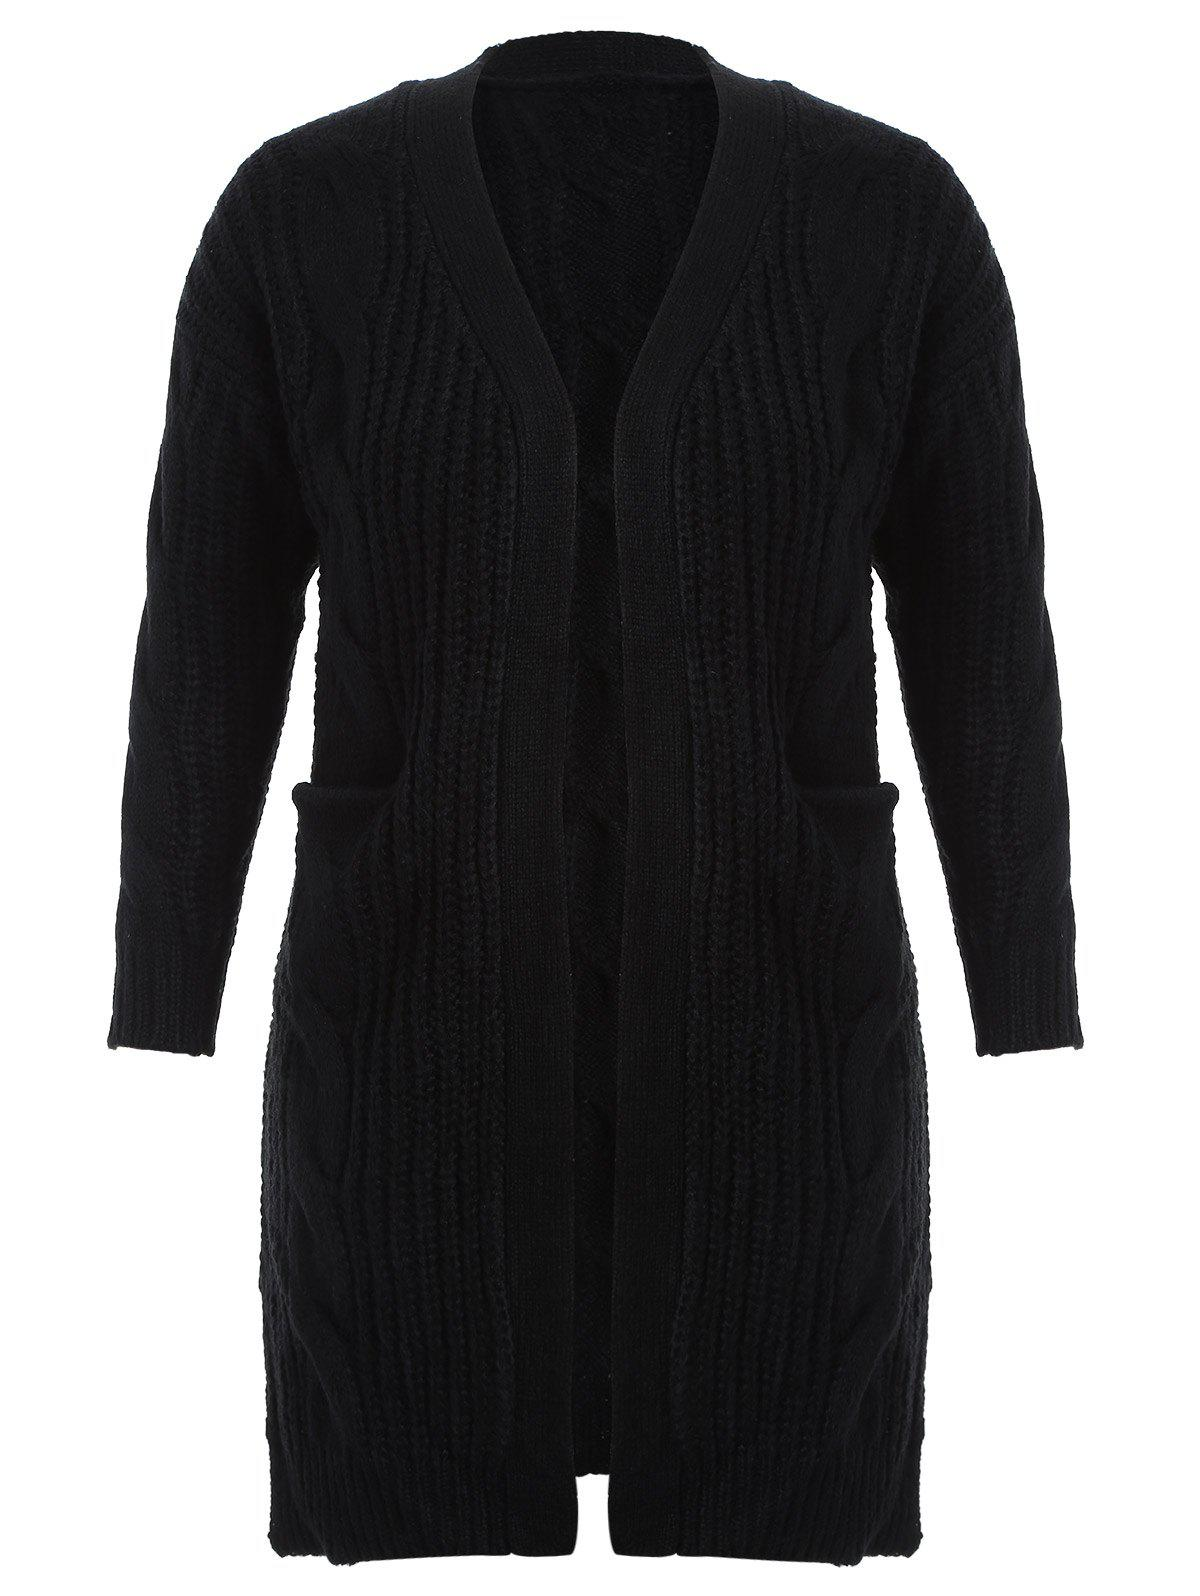 Plus Size Cable Knit Pockets Design Cardigan - BLACK 3XL